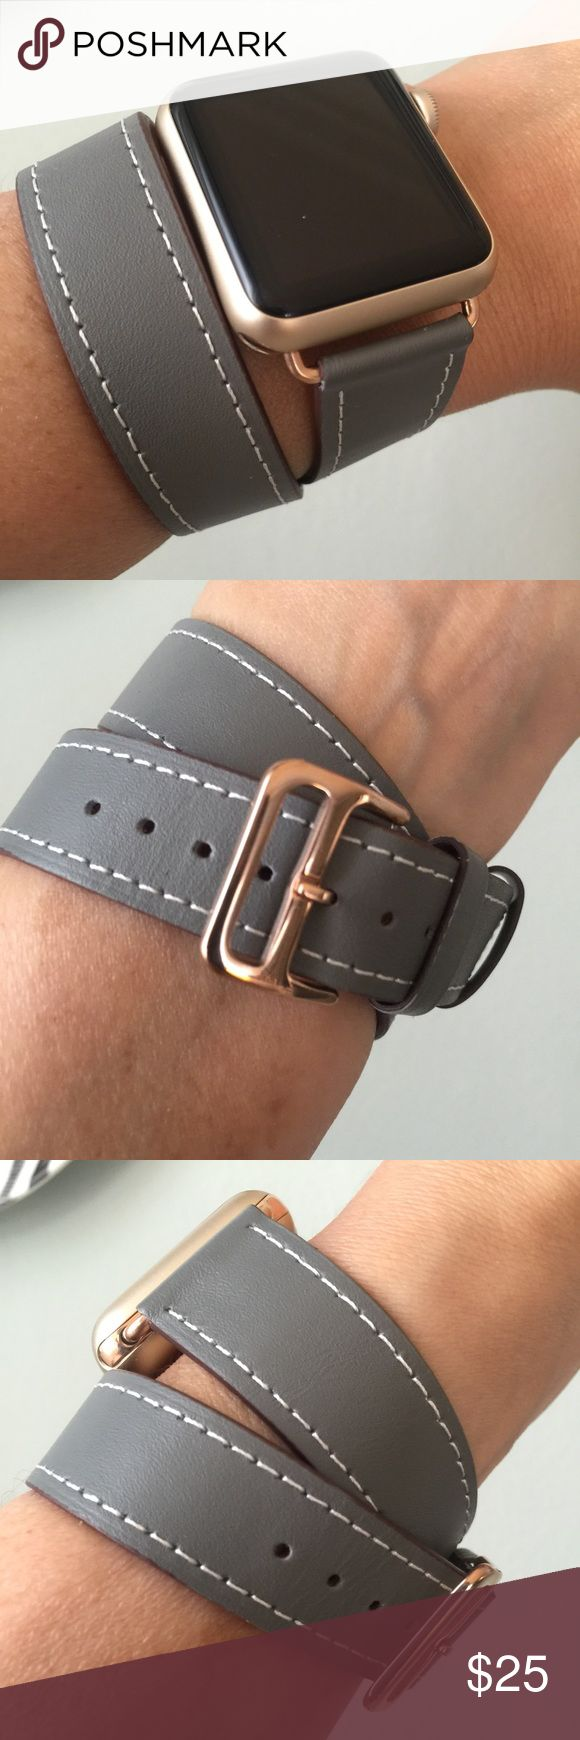 ROSE GOLD HW Gray Apple Watch double tour band! ⌚️ Double tour band, leather.  It comes with 38mm or 42mm adapters. Please select your size when you purchase. The adapters fit the Apple Watch I, 2 and Sport.    I also have other band colors, hardware colors and styles in my closet. Check them out! If you don't see what you are looking for, feel free to message me!    I offer 15% off if you buy two or more! Add BOTH items to the bundle for the discount to automatically apply.    Only the band…